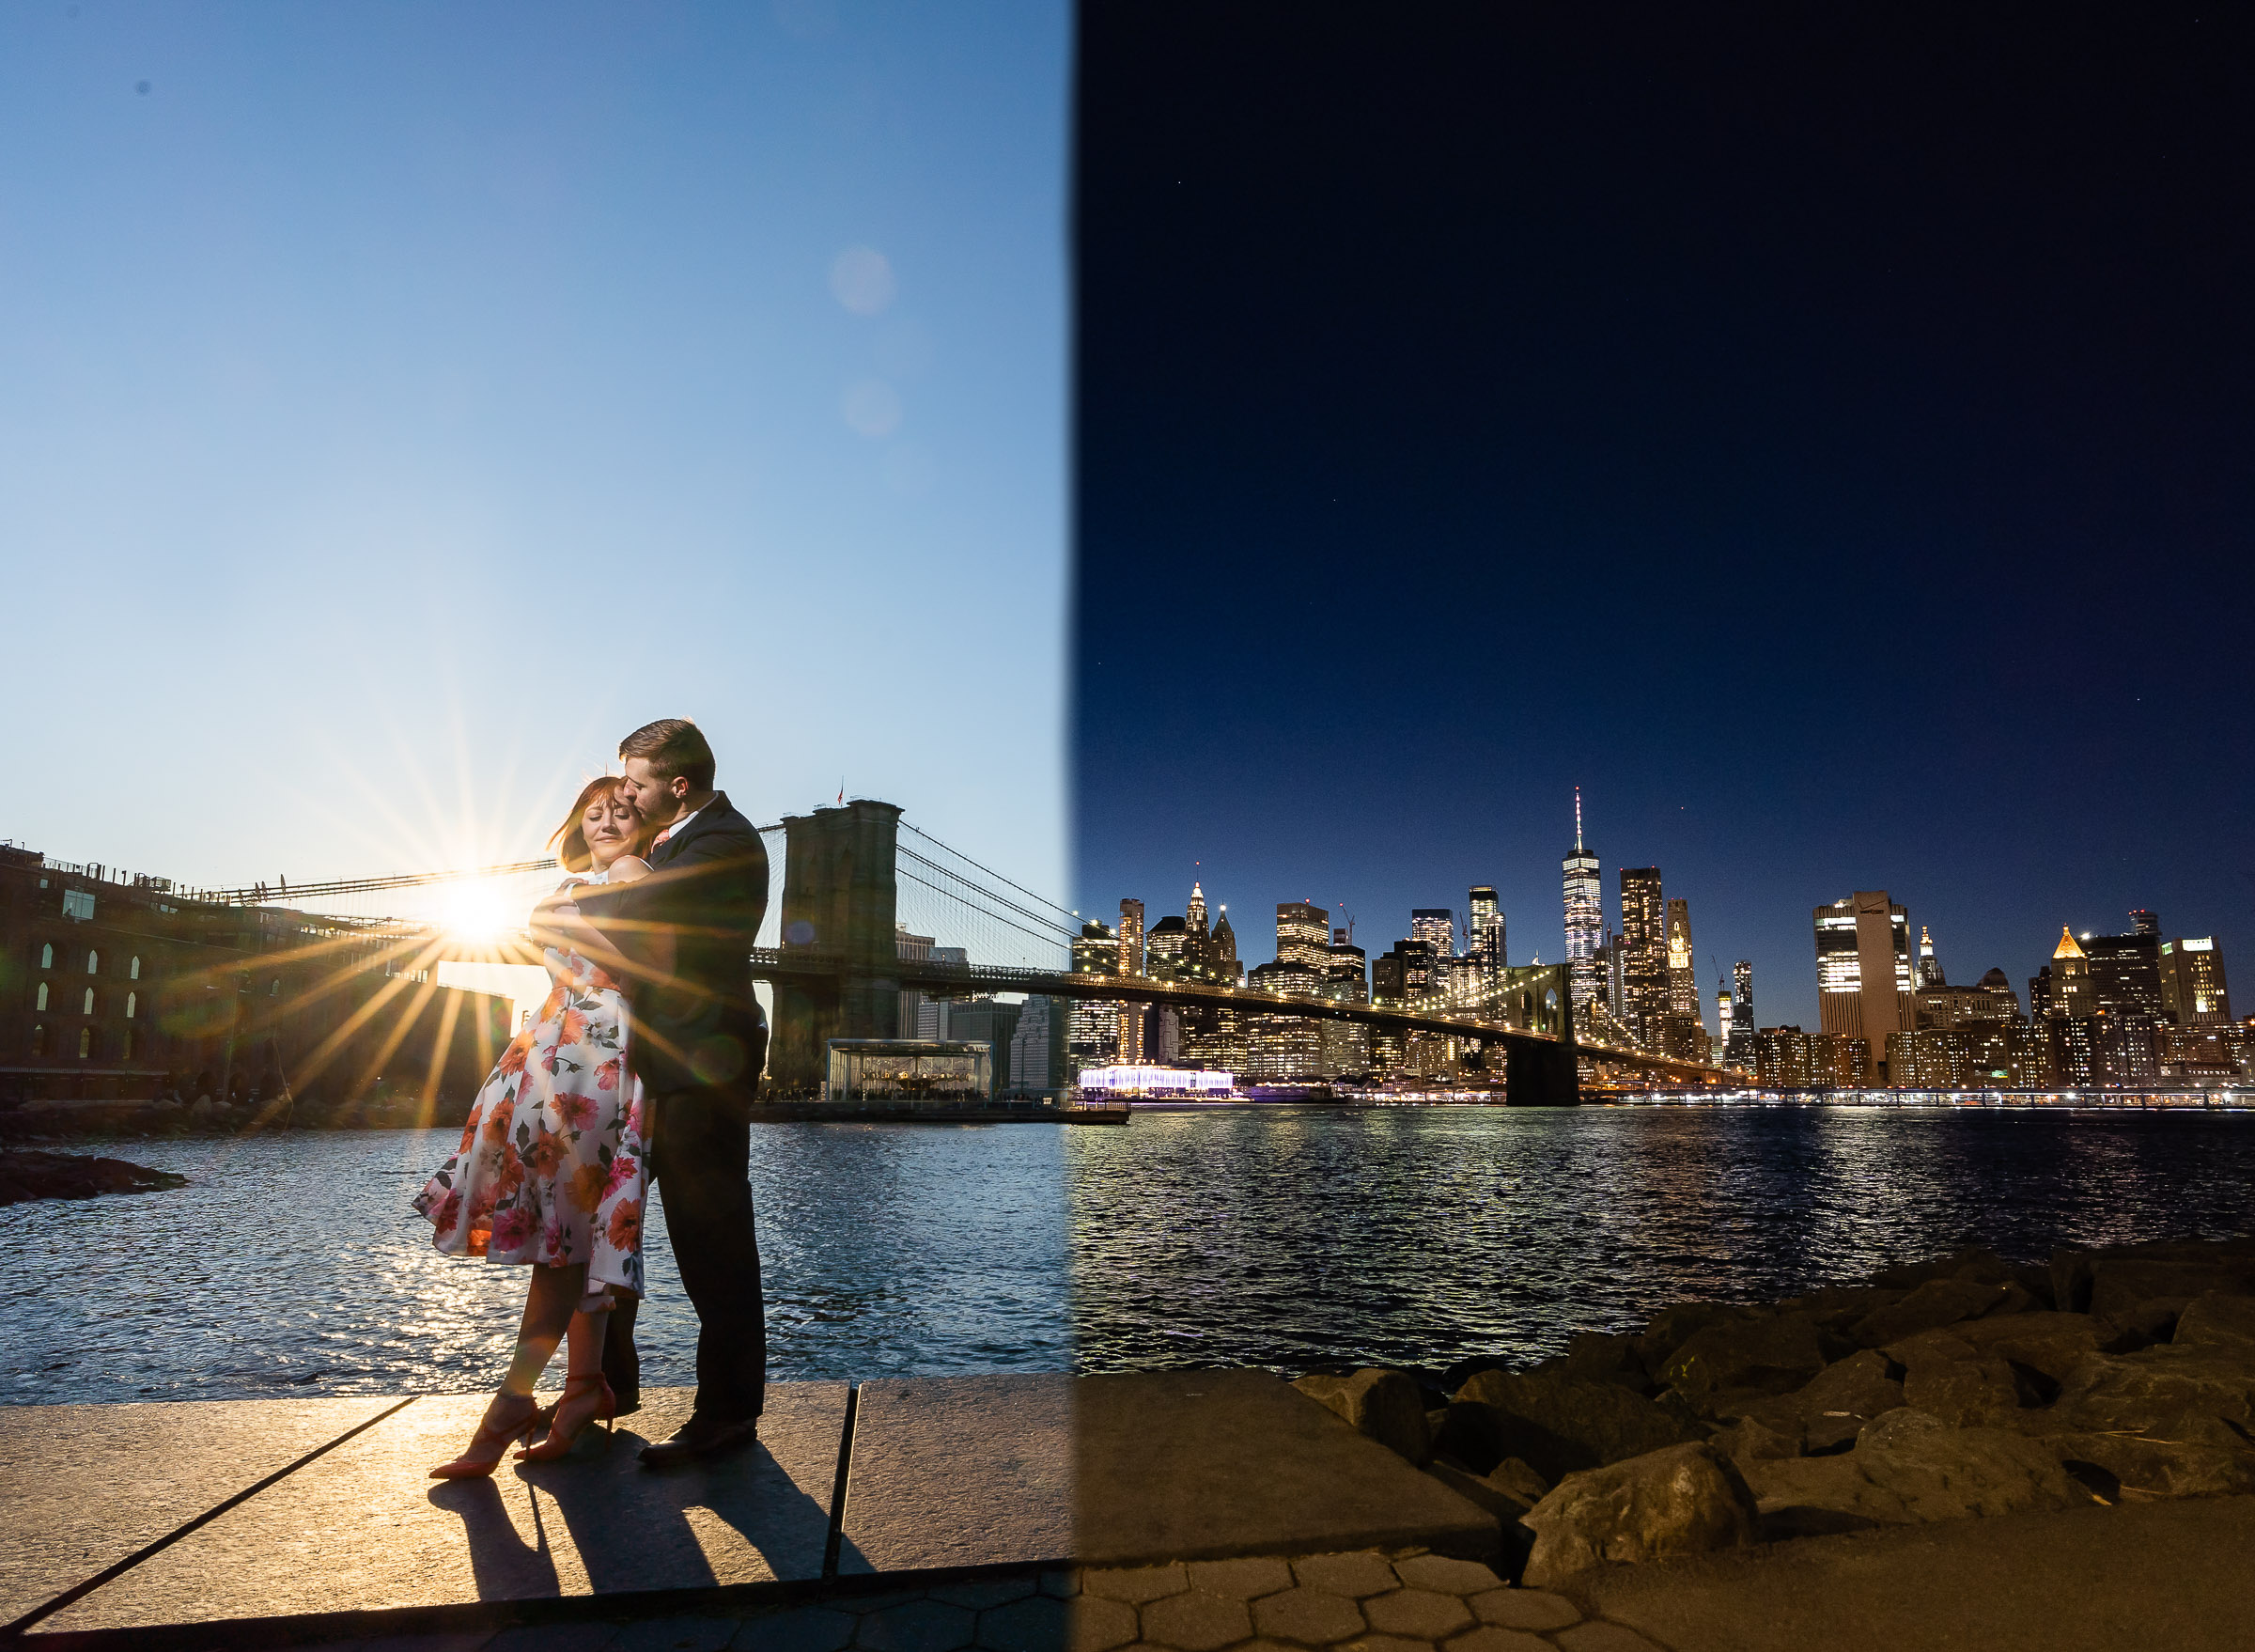 Day and night engagement photo at Brooklyn Bridge - photo by The Brenizers